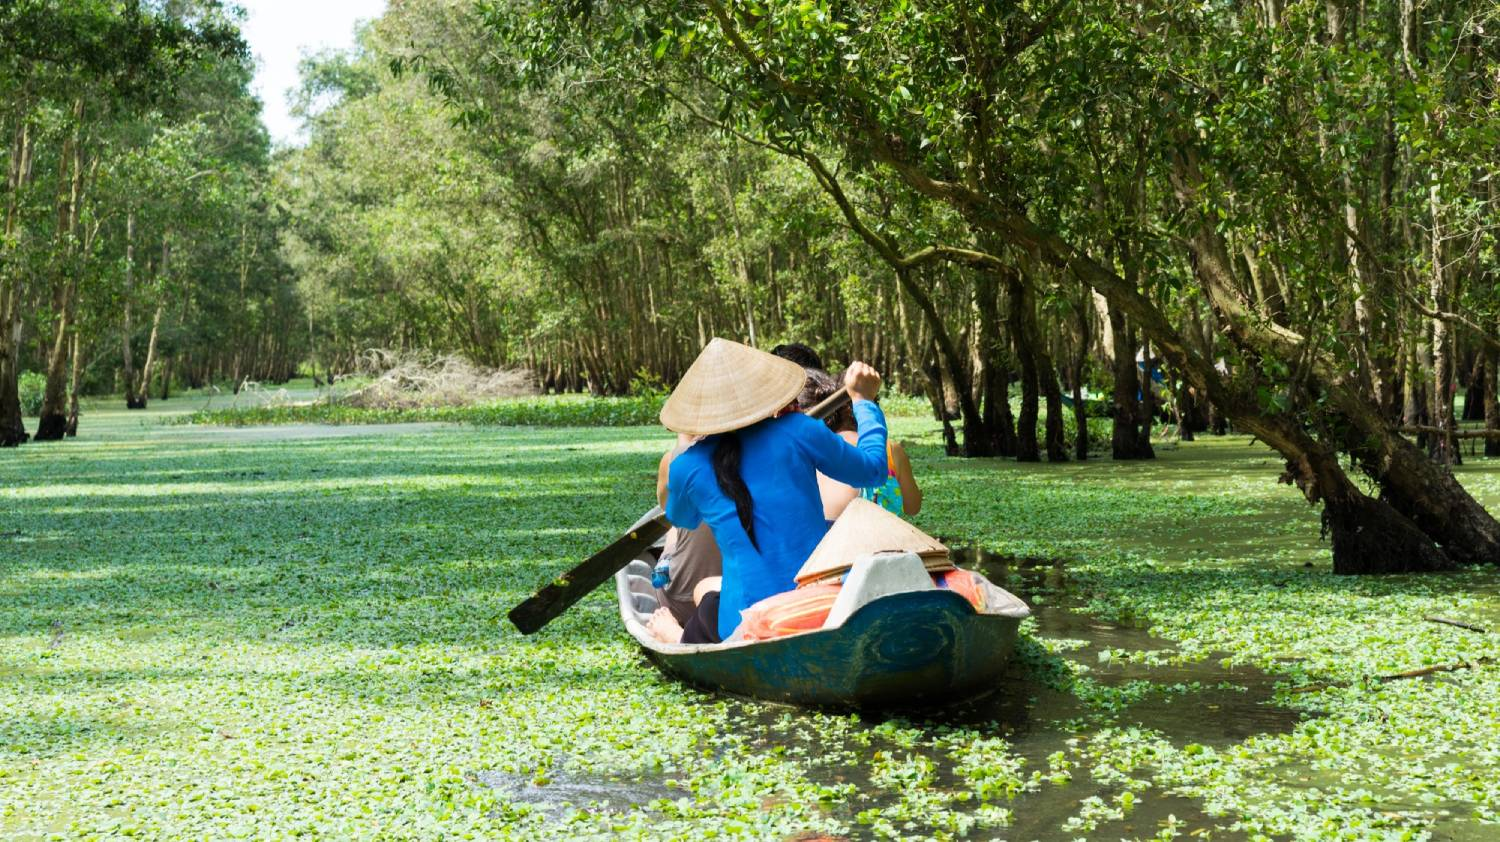 Mekong Delta - Things To Do In Ho Chi Minh City